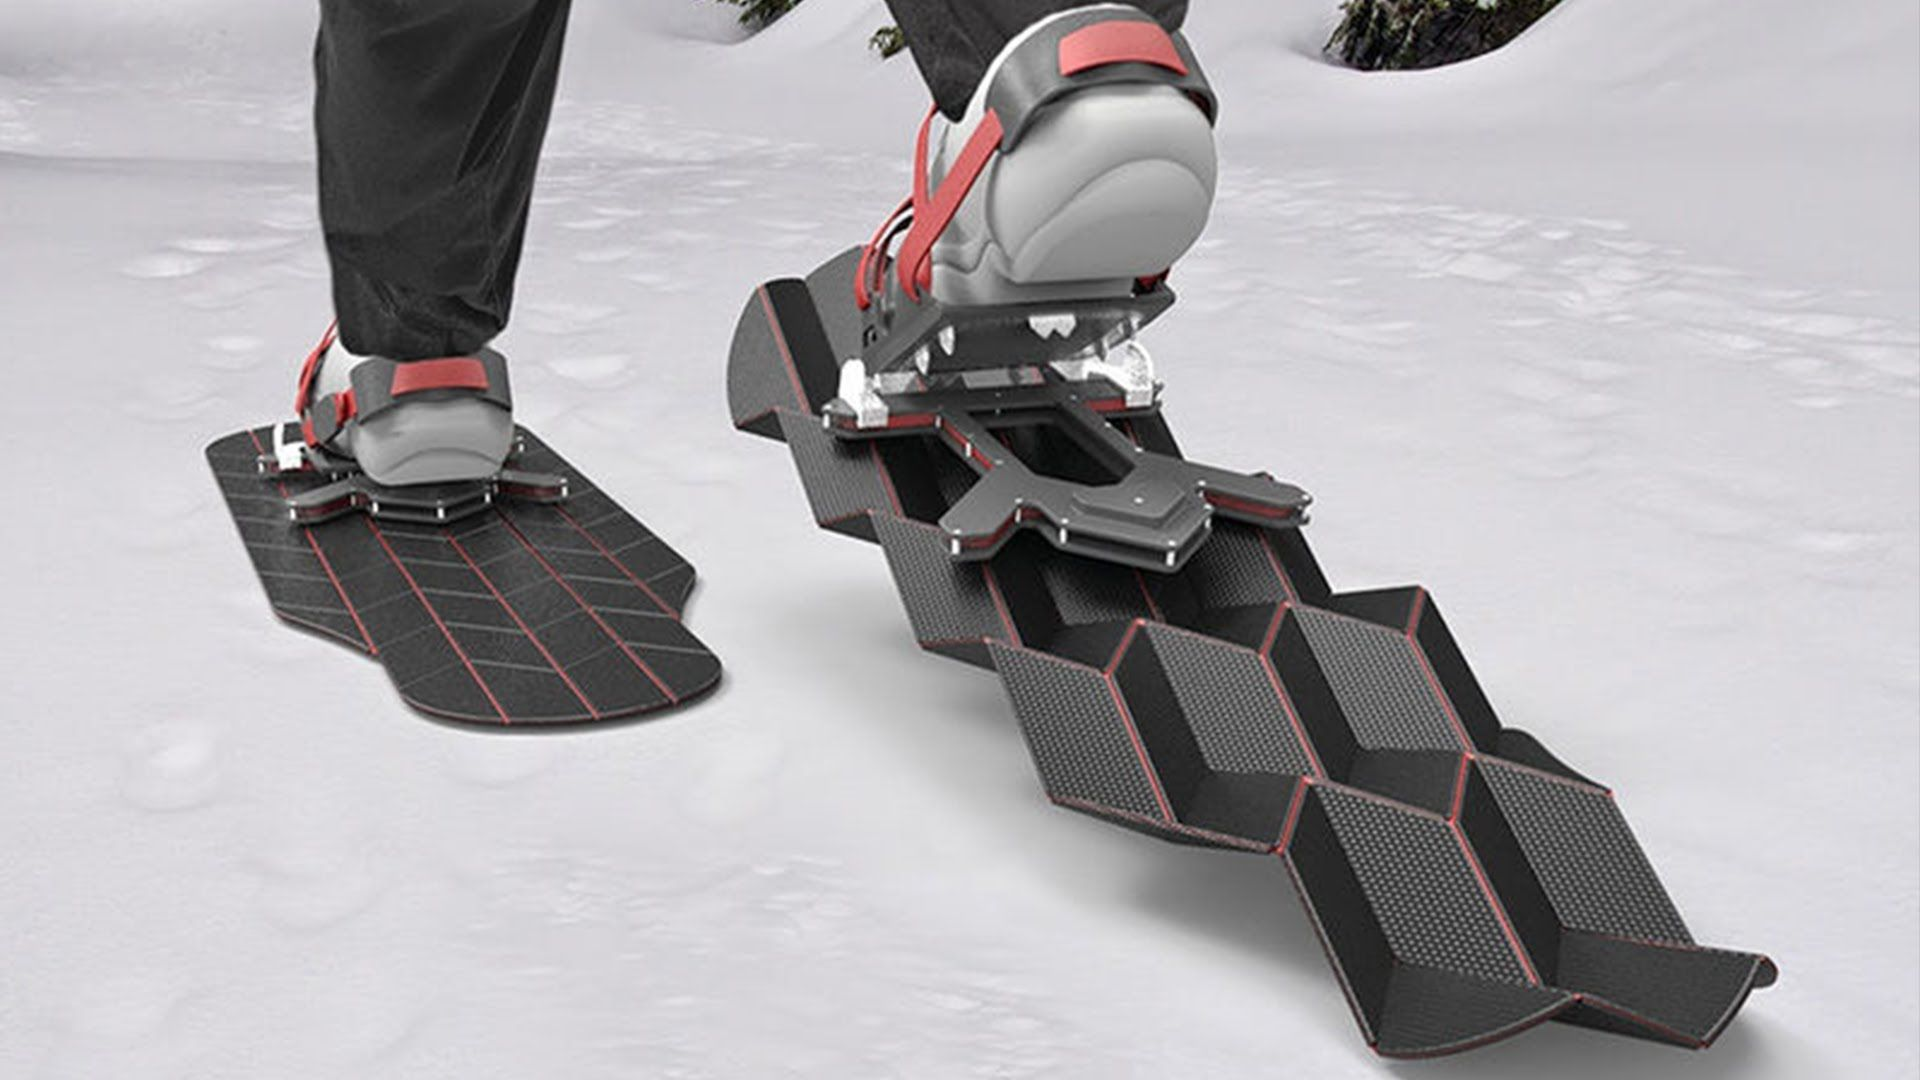 5 Crazy New Inventions You NEED To See 15 Snow shoes